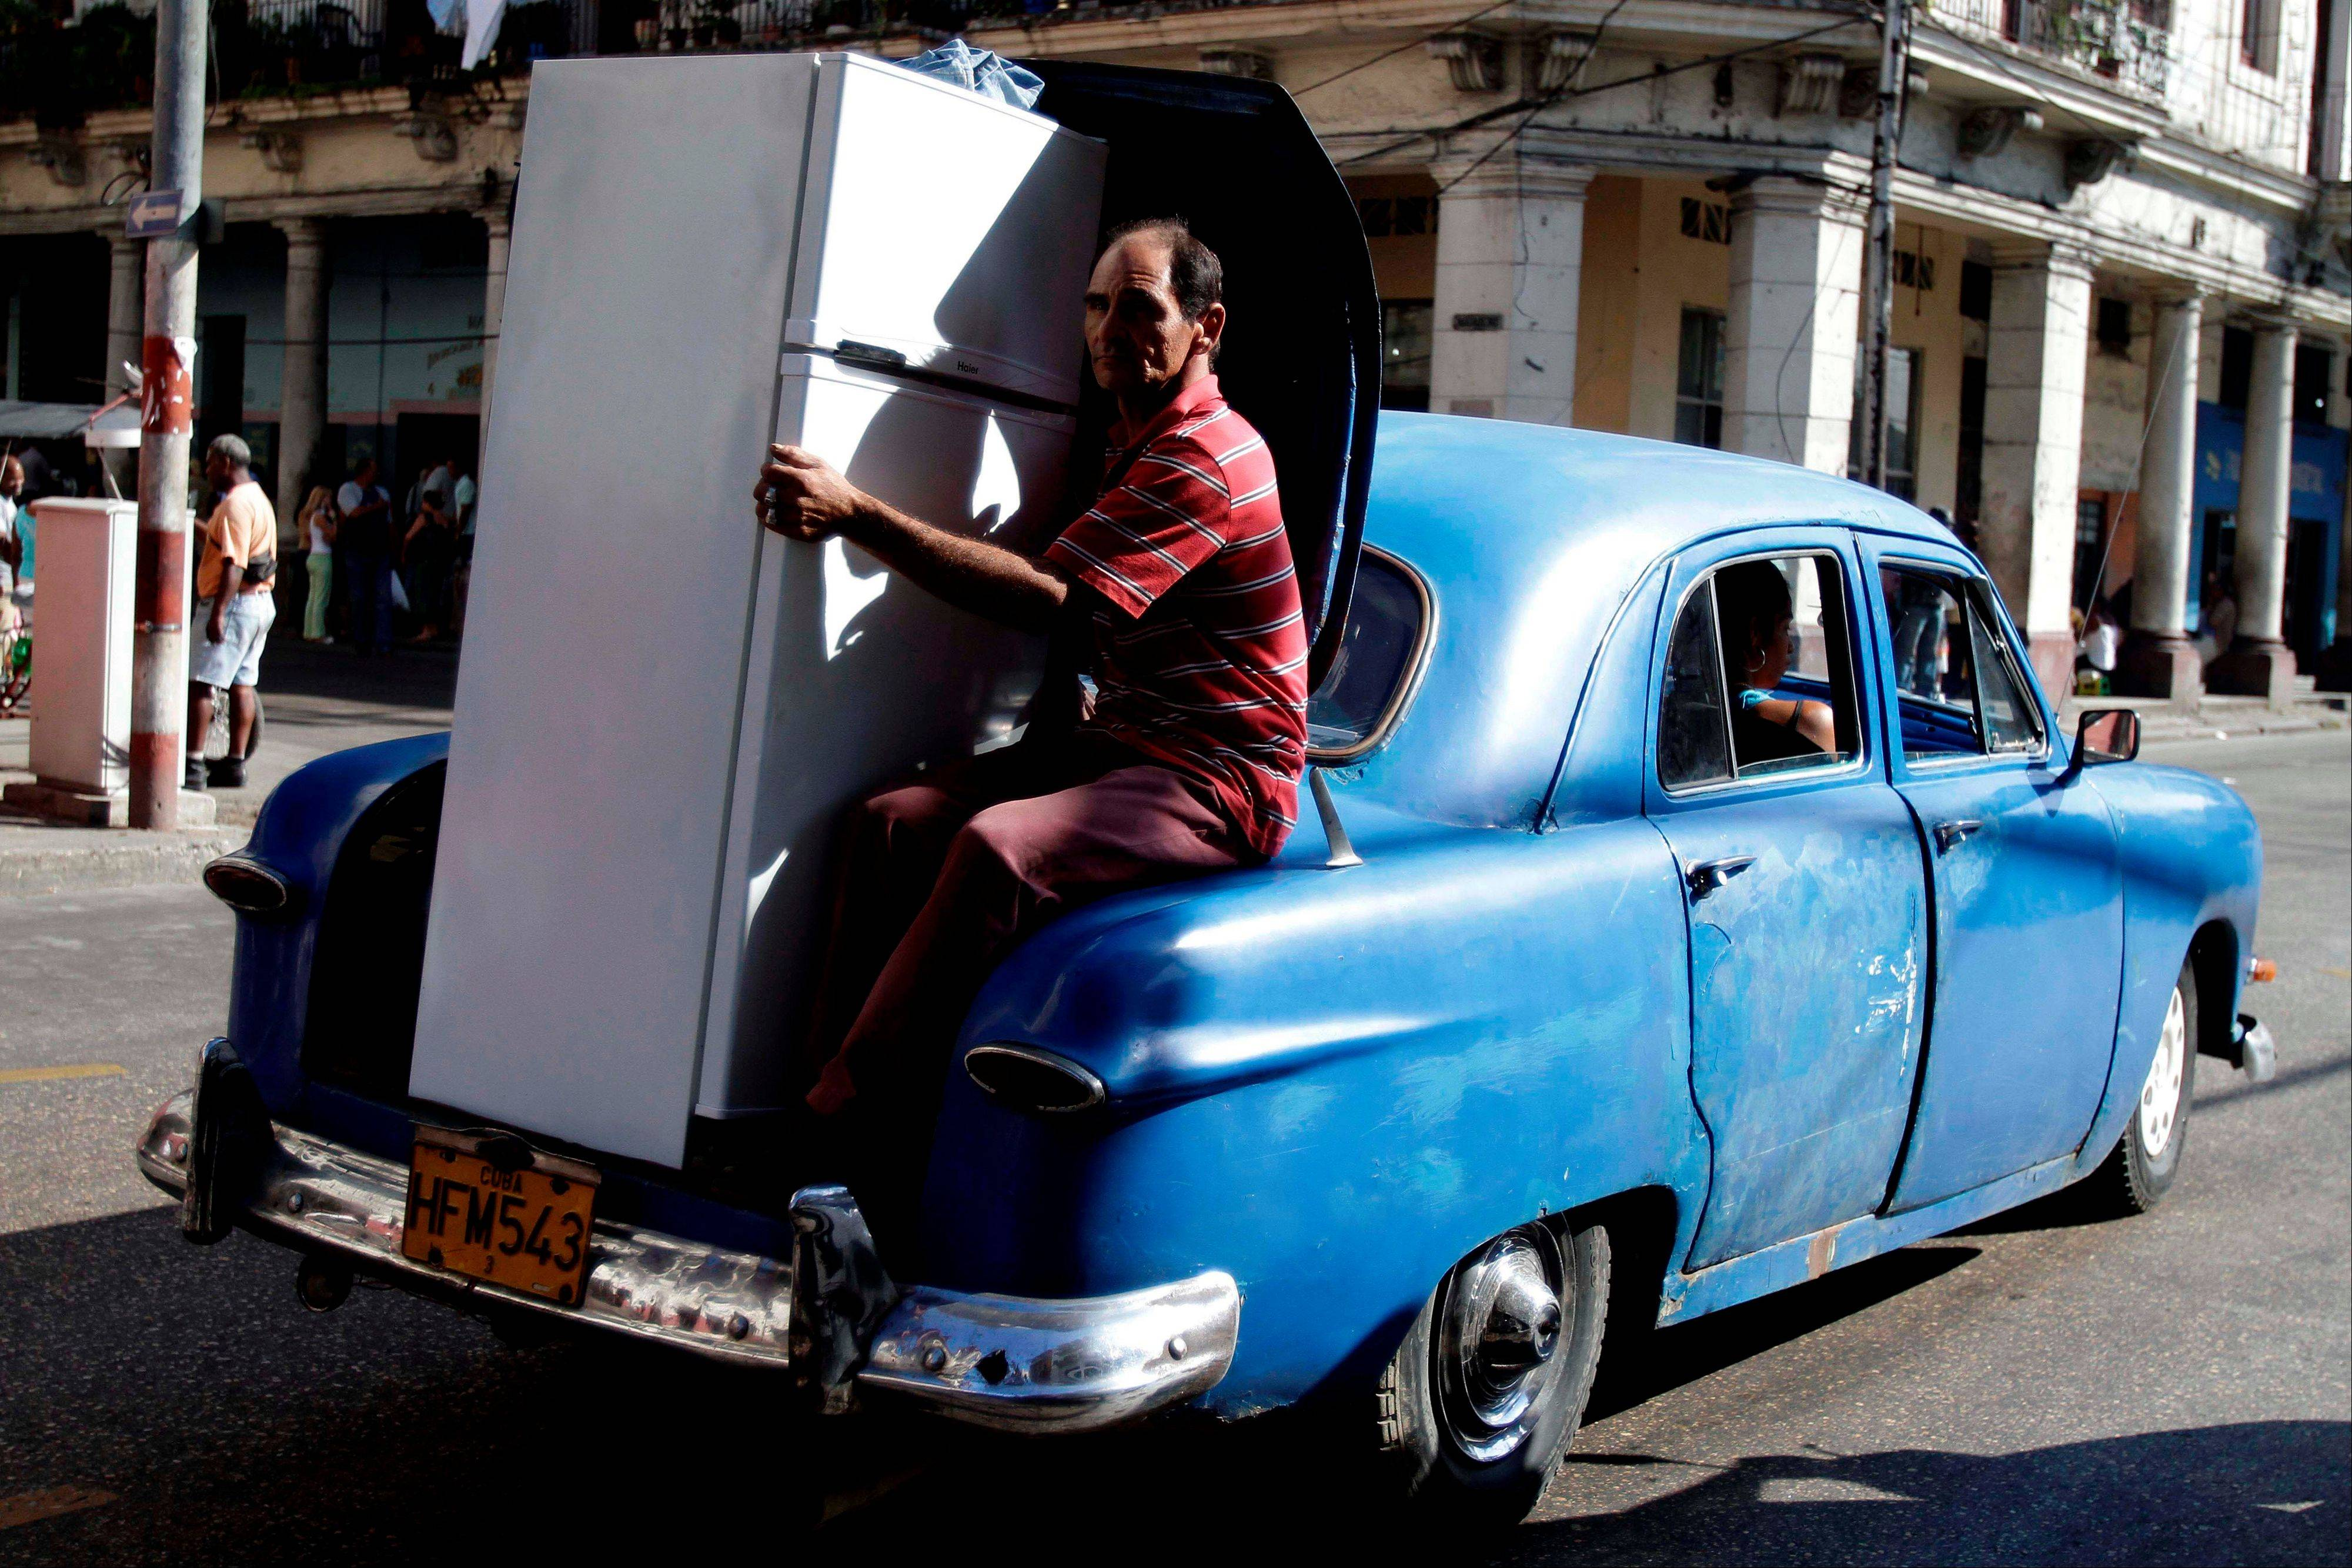 In this Feb. 14, 2012 file photo, a man transports a new Chinese made refrigerator in the trunk of a old car in Havana, Cuba. Cuba has authorized individual imports of appliances such as air conditioners, refrigerators and microwave ovens, lifting a ban imposed in 2005 amid a wave of energy shortages and blackouts.